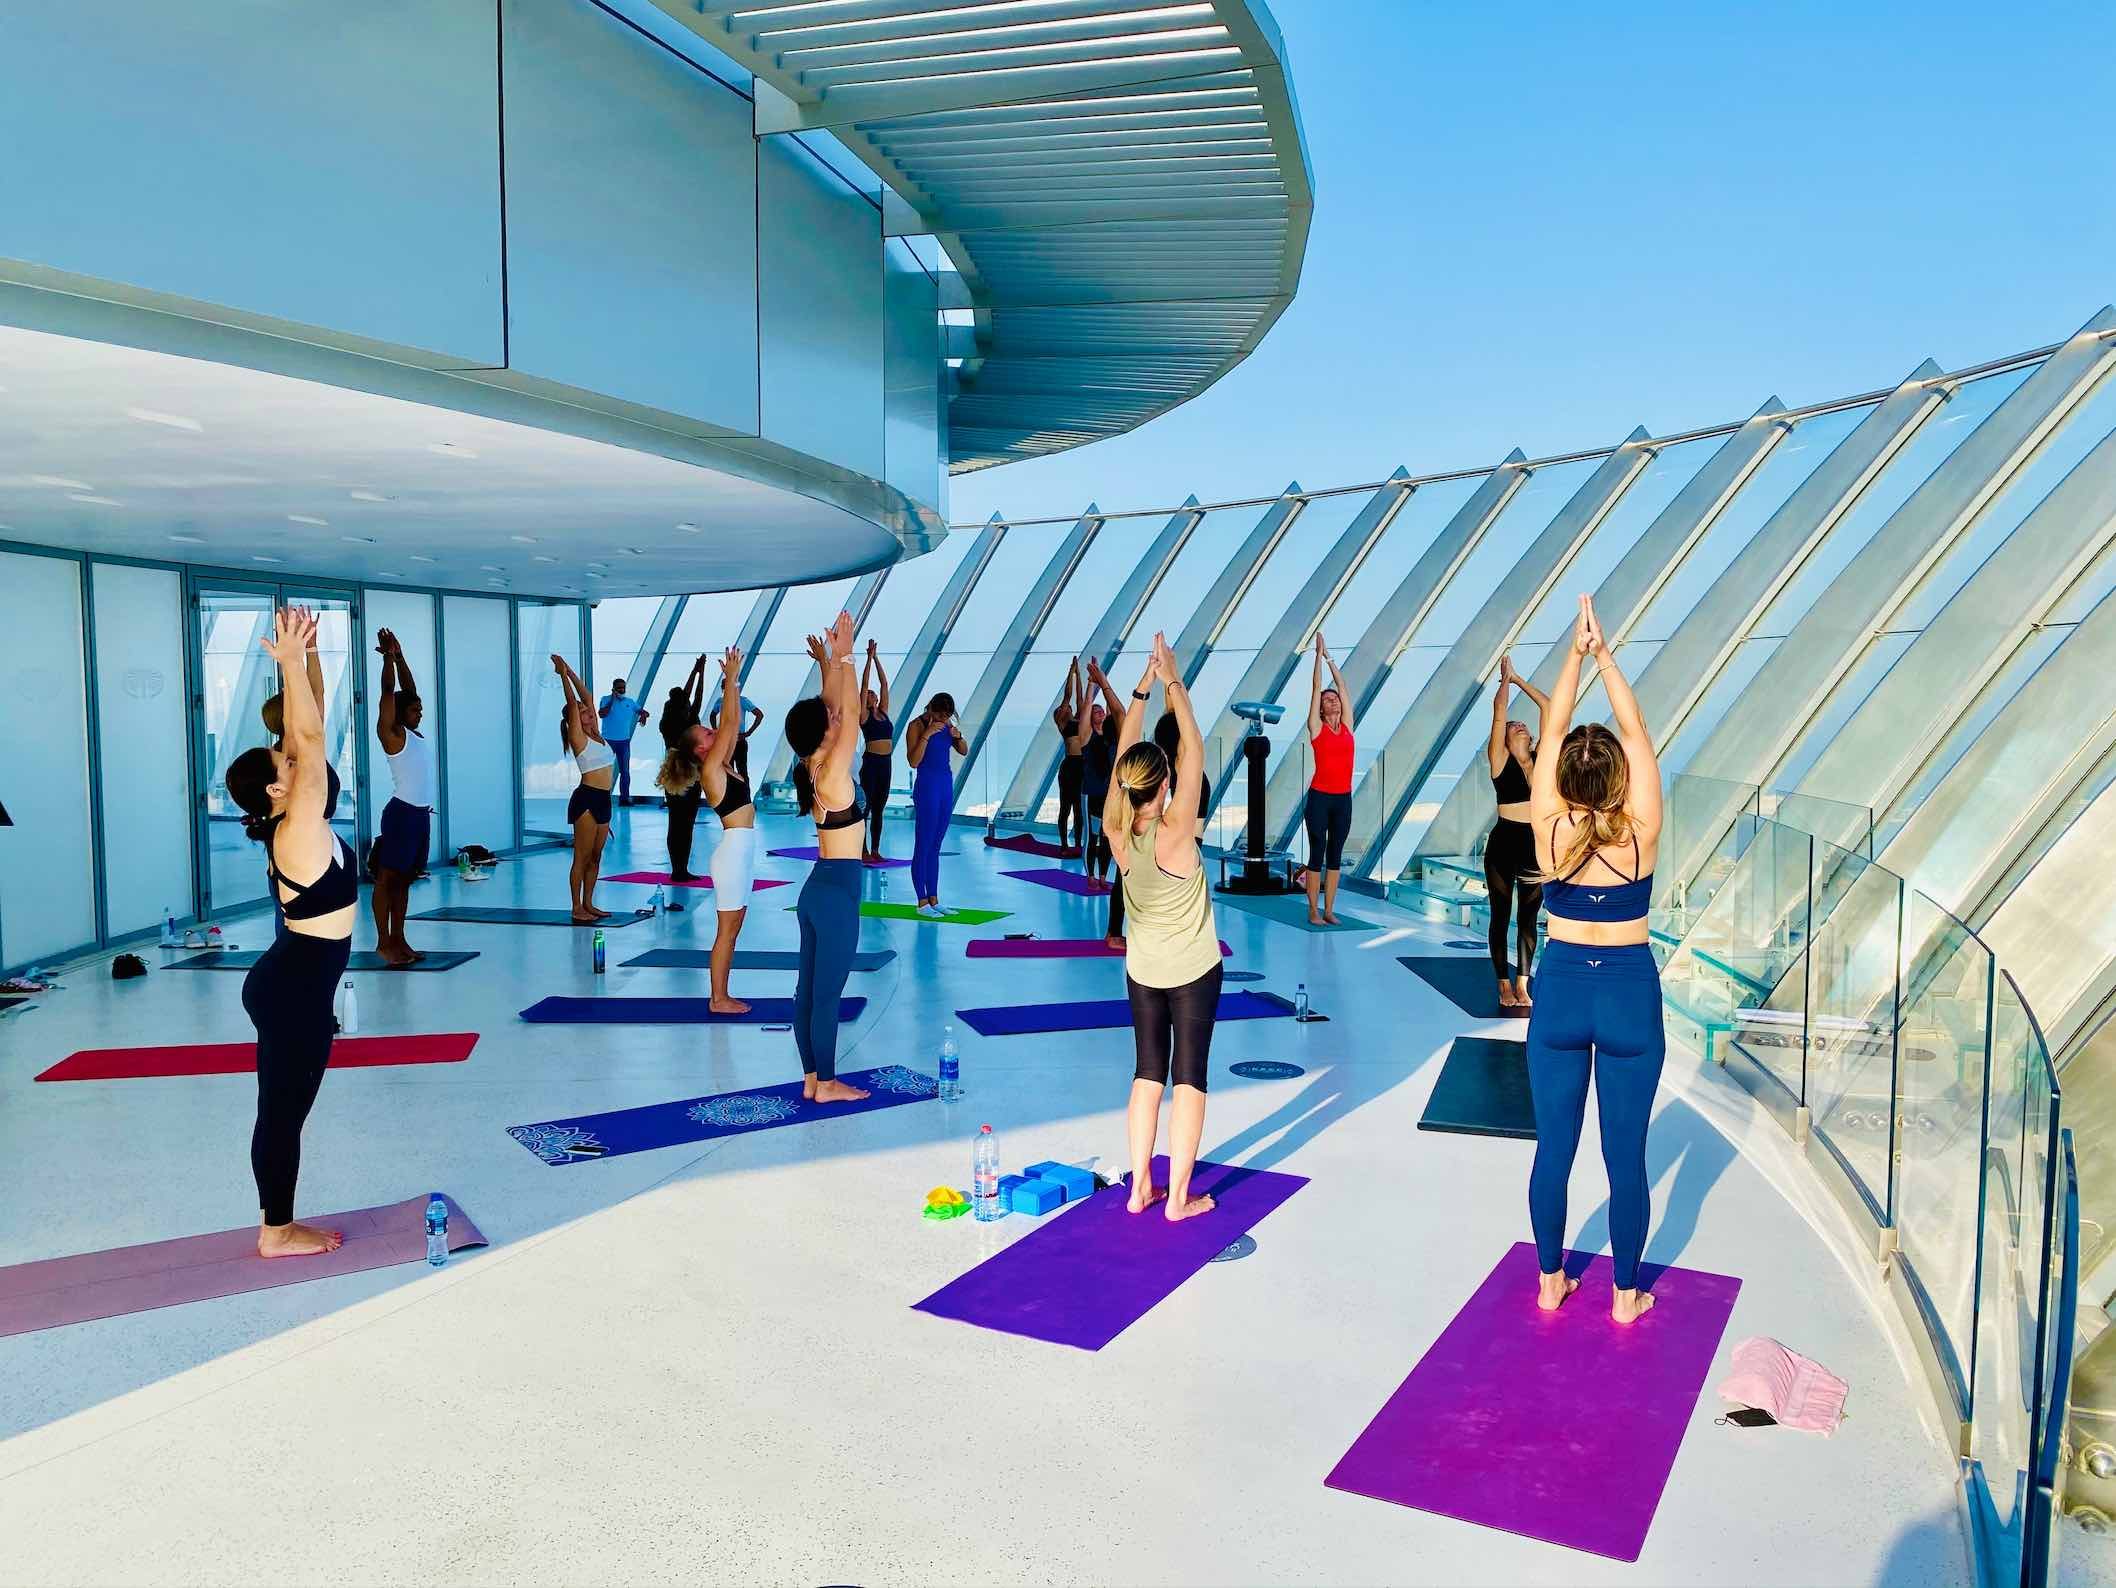 The View yoga